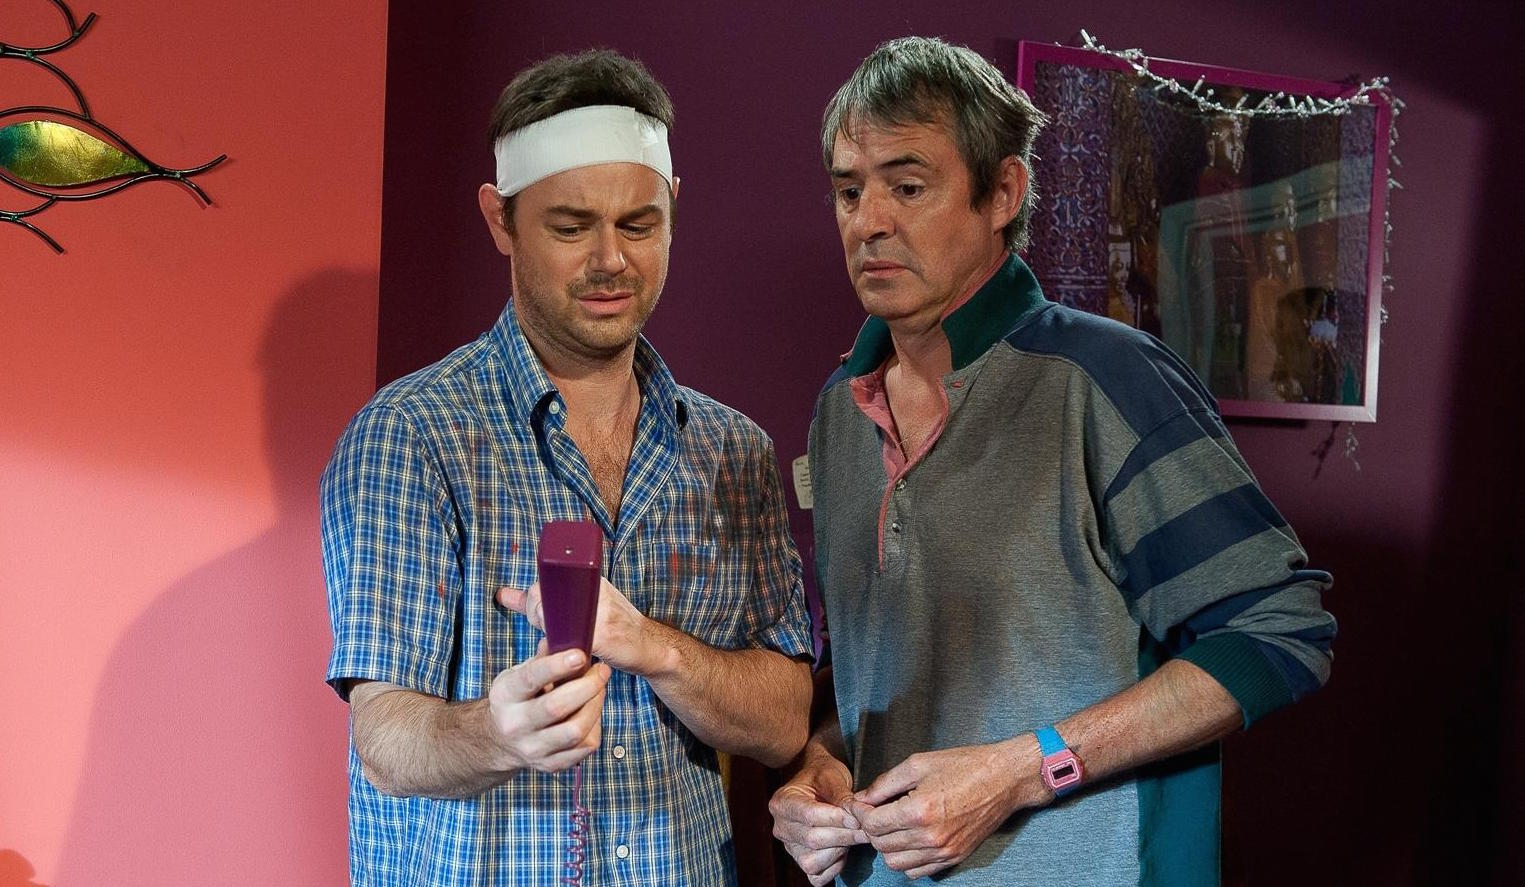 danny-dyer-and-neil-morrissey-in-run-for-your-wife-(2012)-large-picture